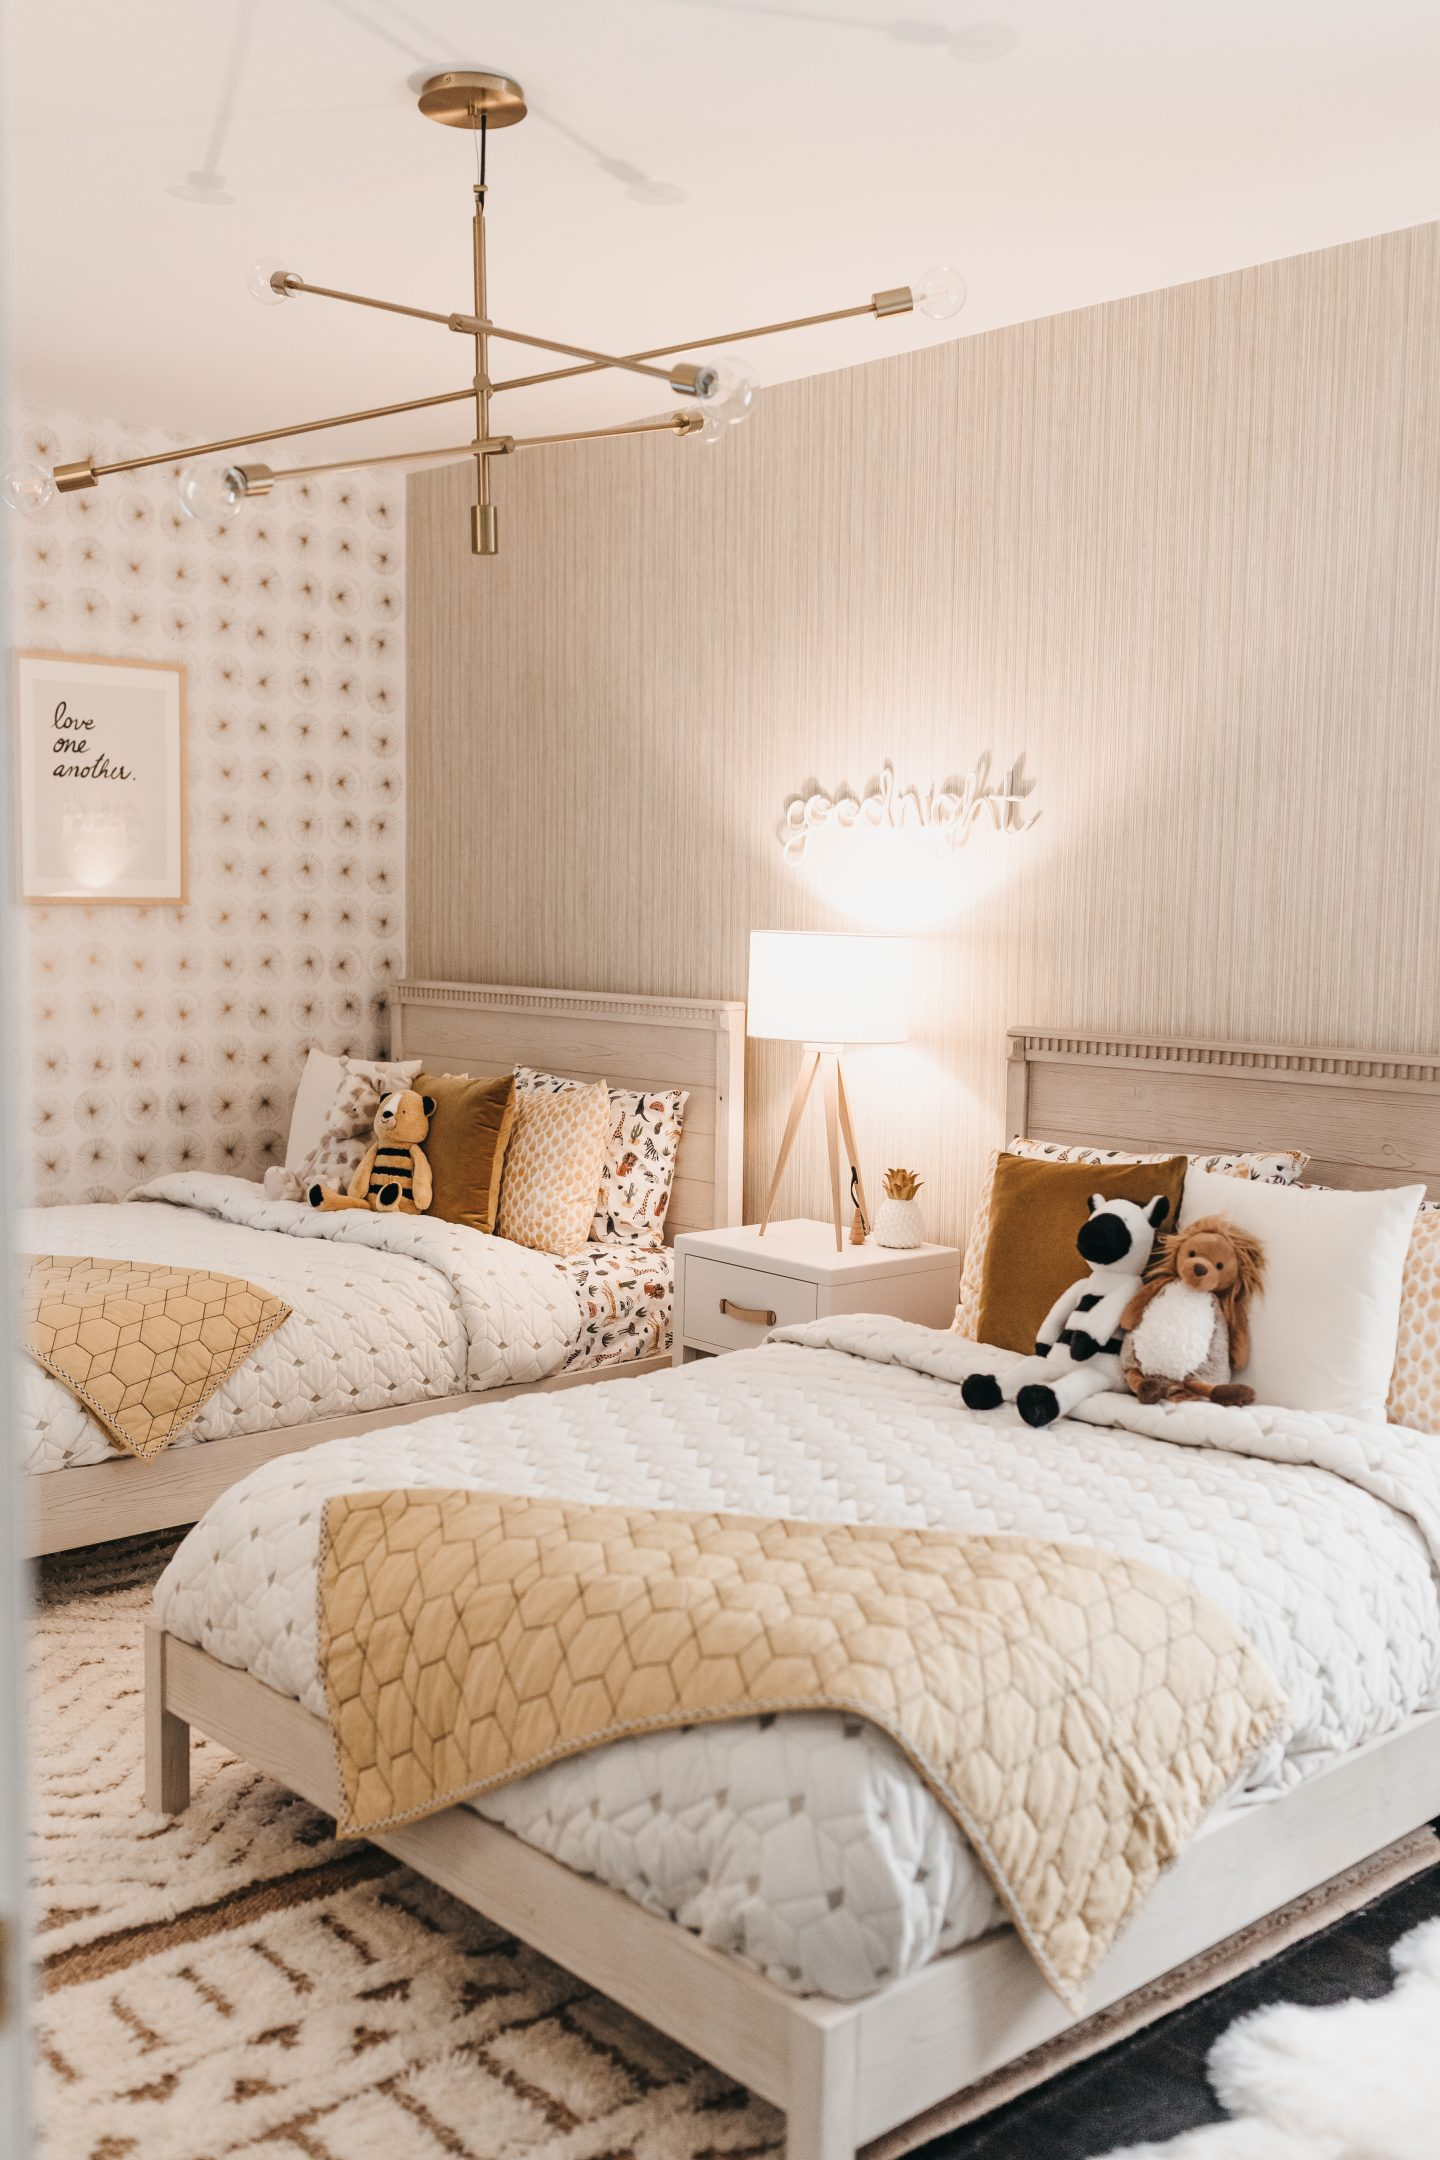 Goodbye baby crib, Hello toddler bed. Big Kid Room Reveal with Pottery Barn Kids